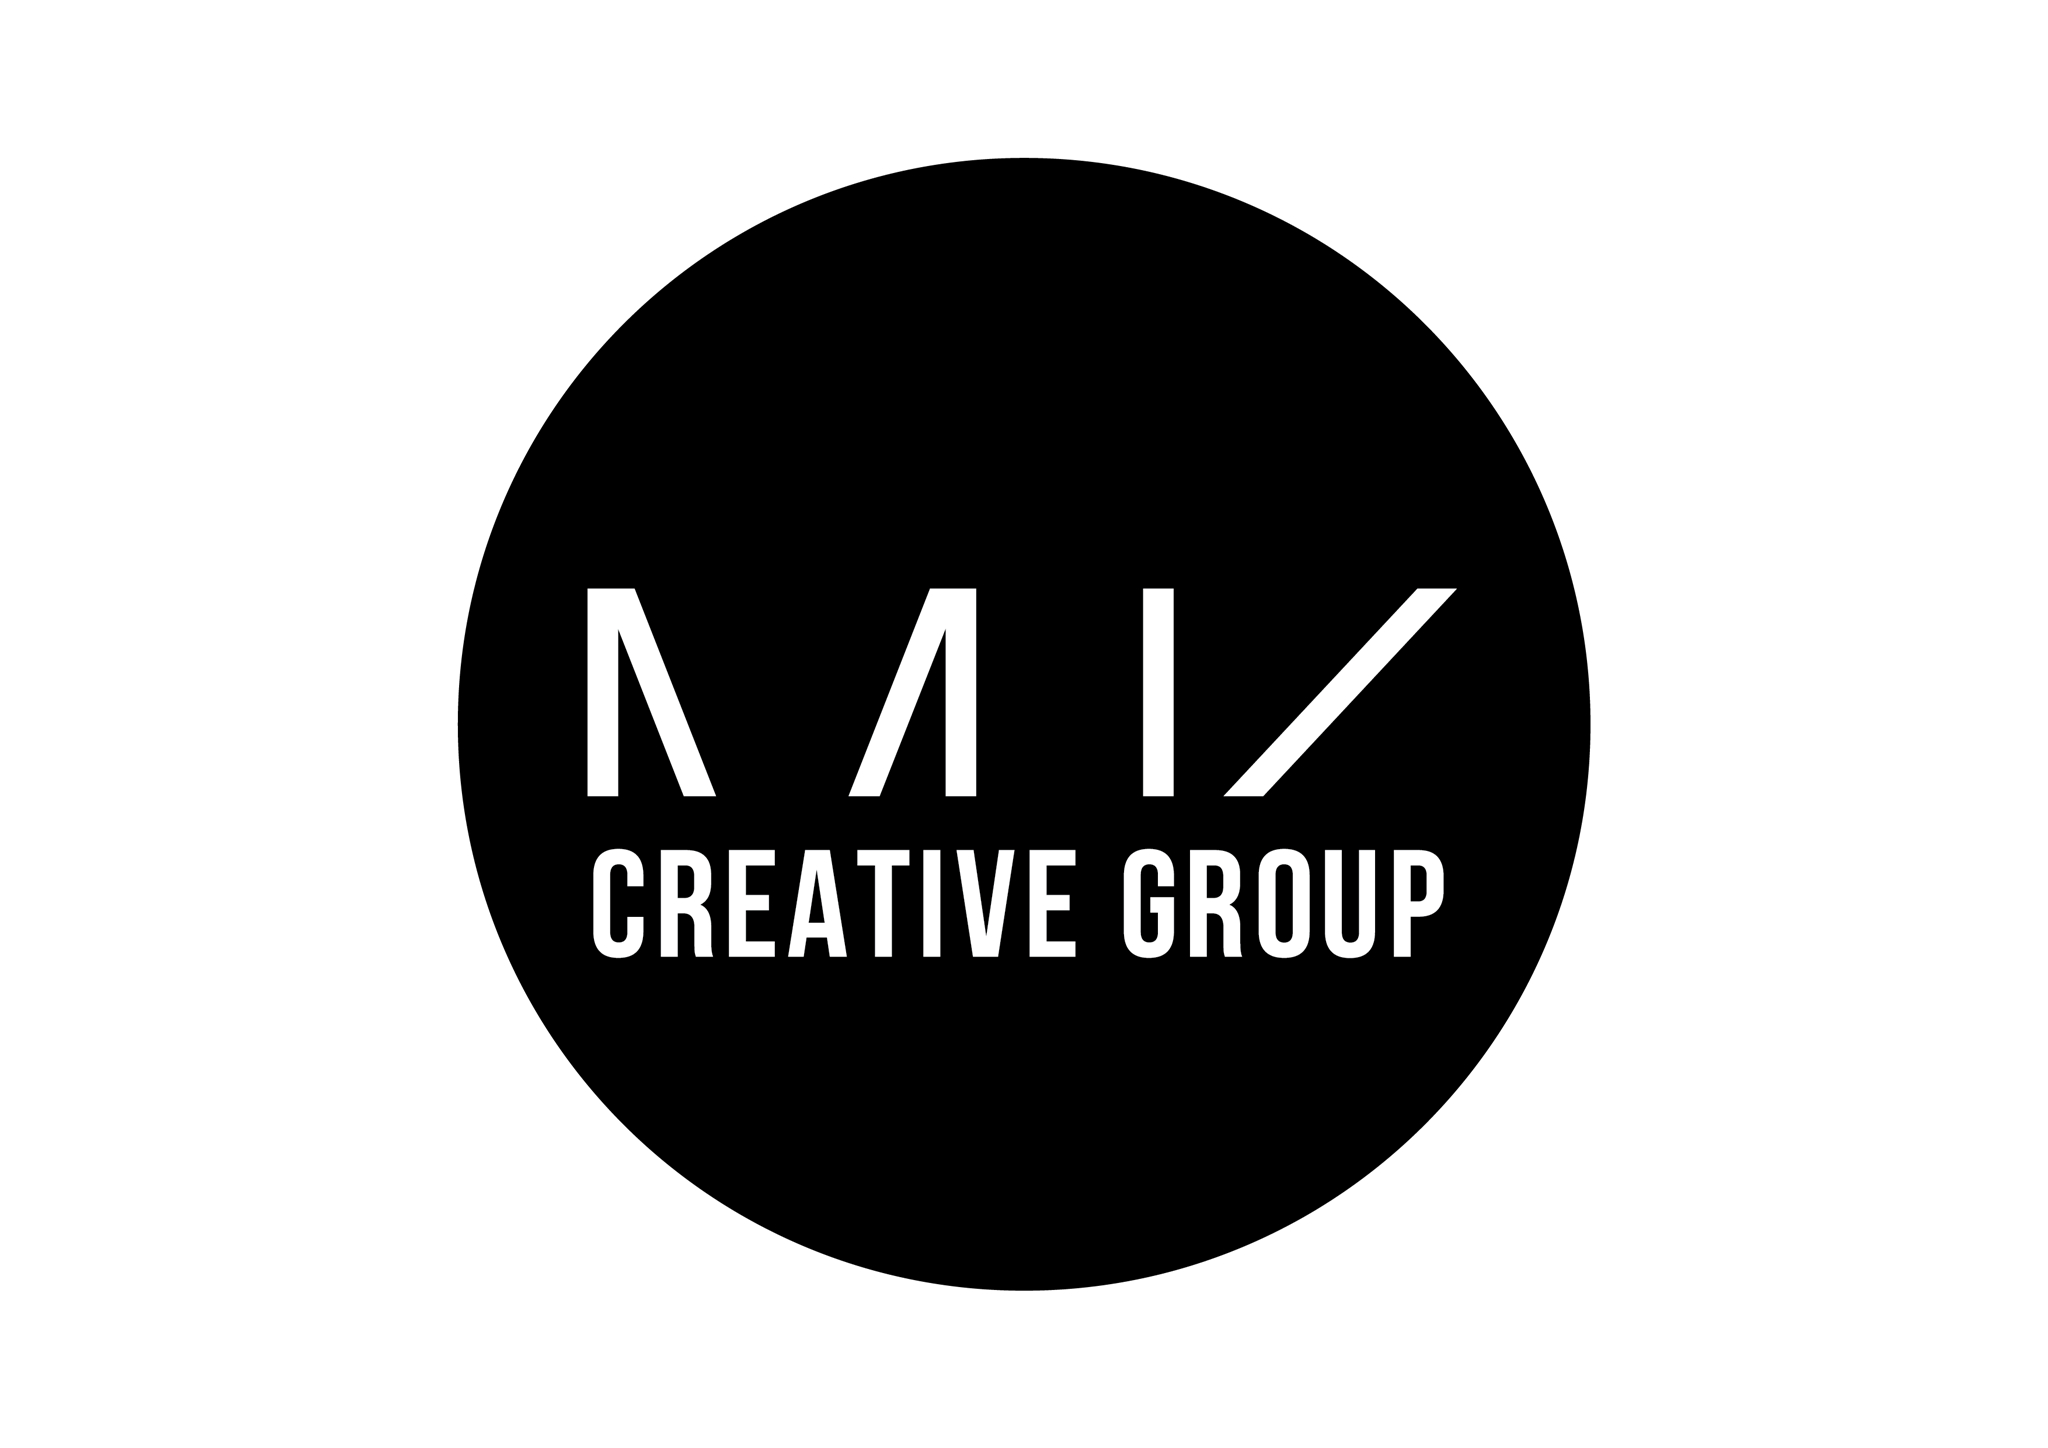 MK creative Group